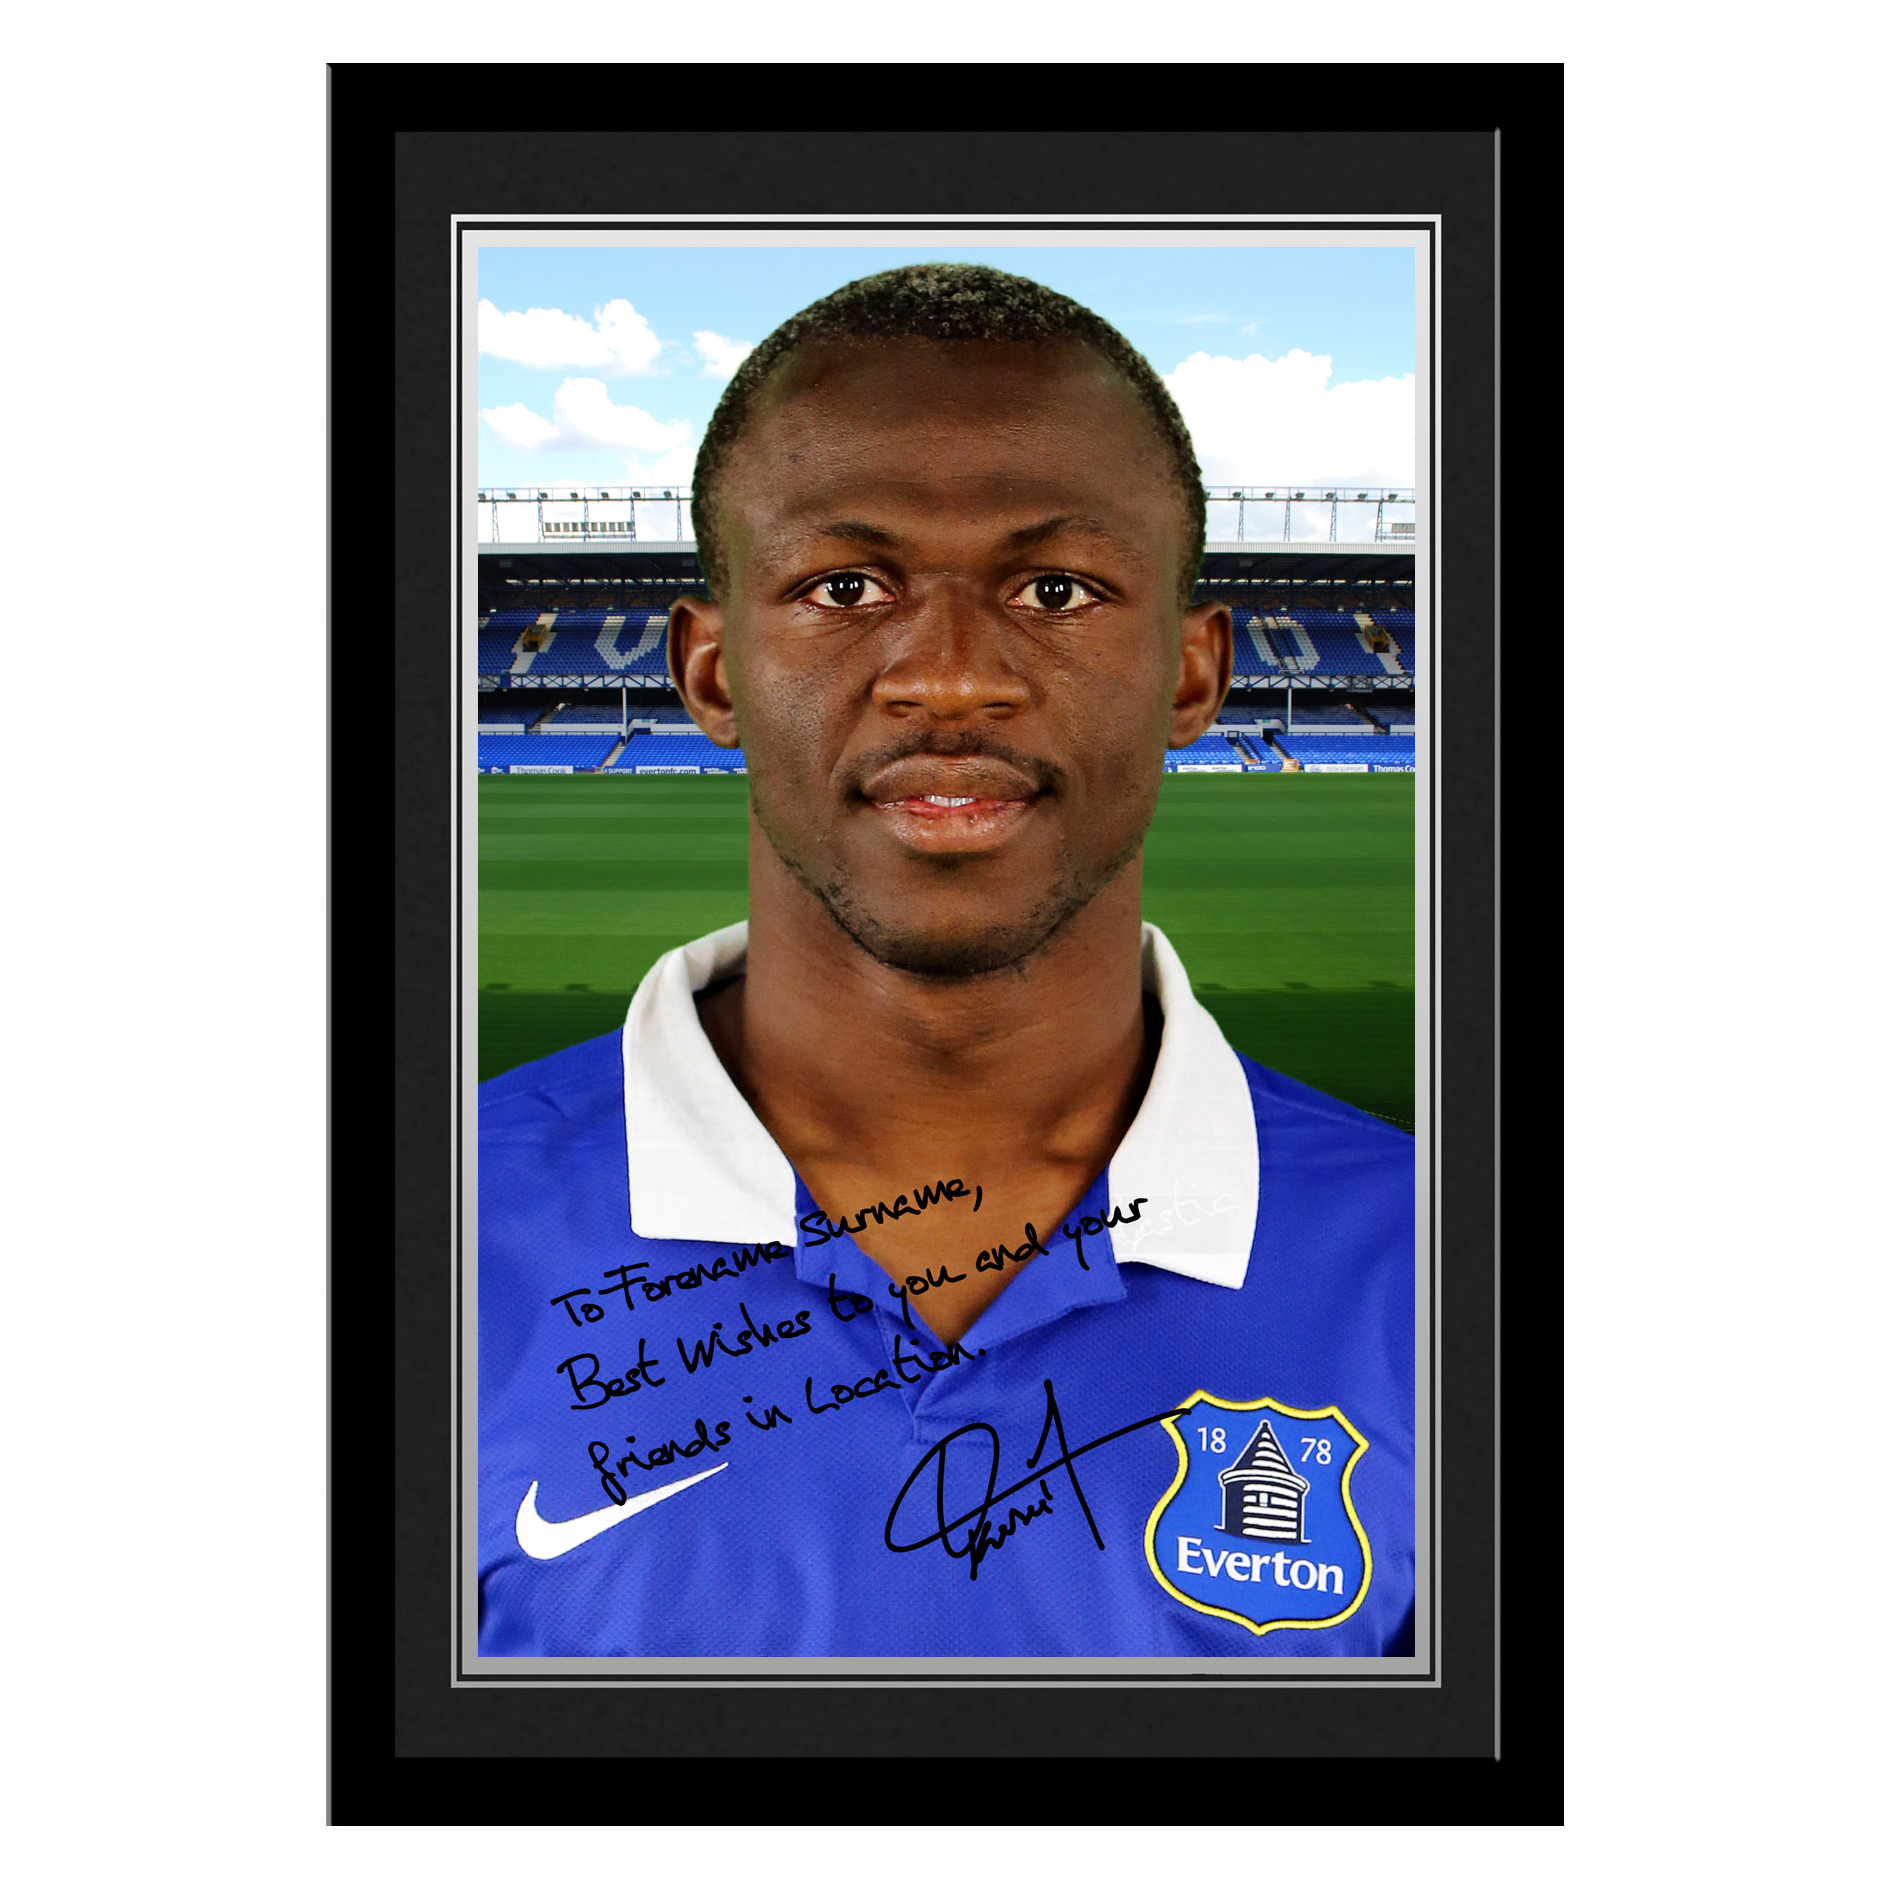 Everton Personalised Signature Photo Framed - Kone